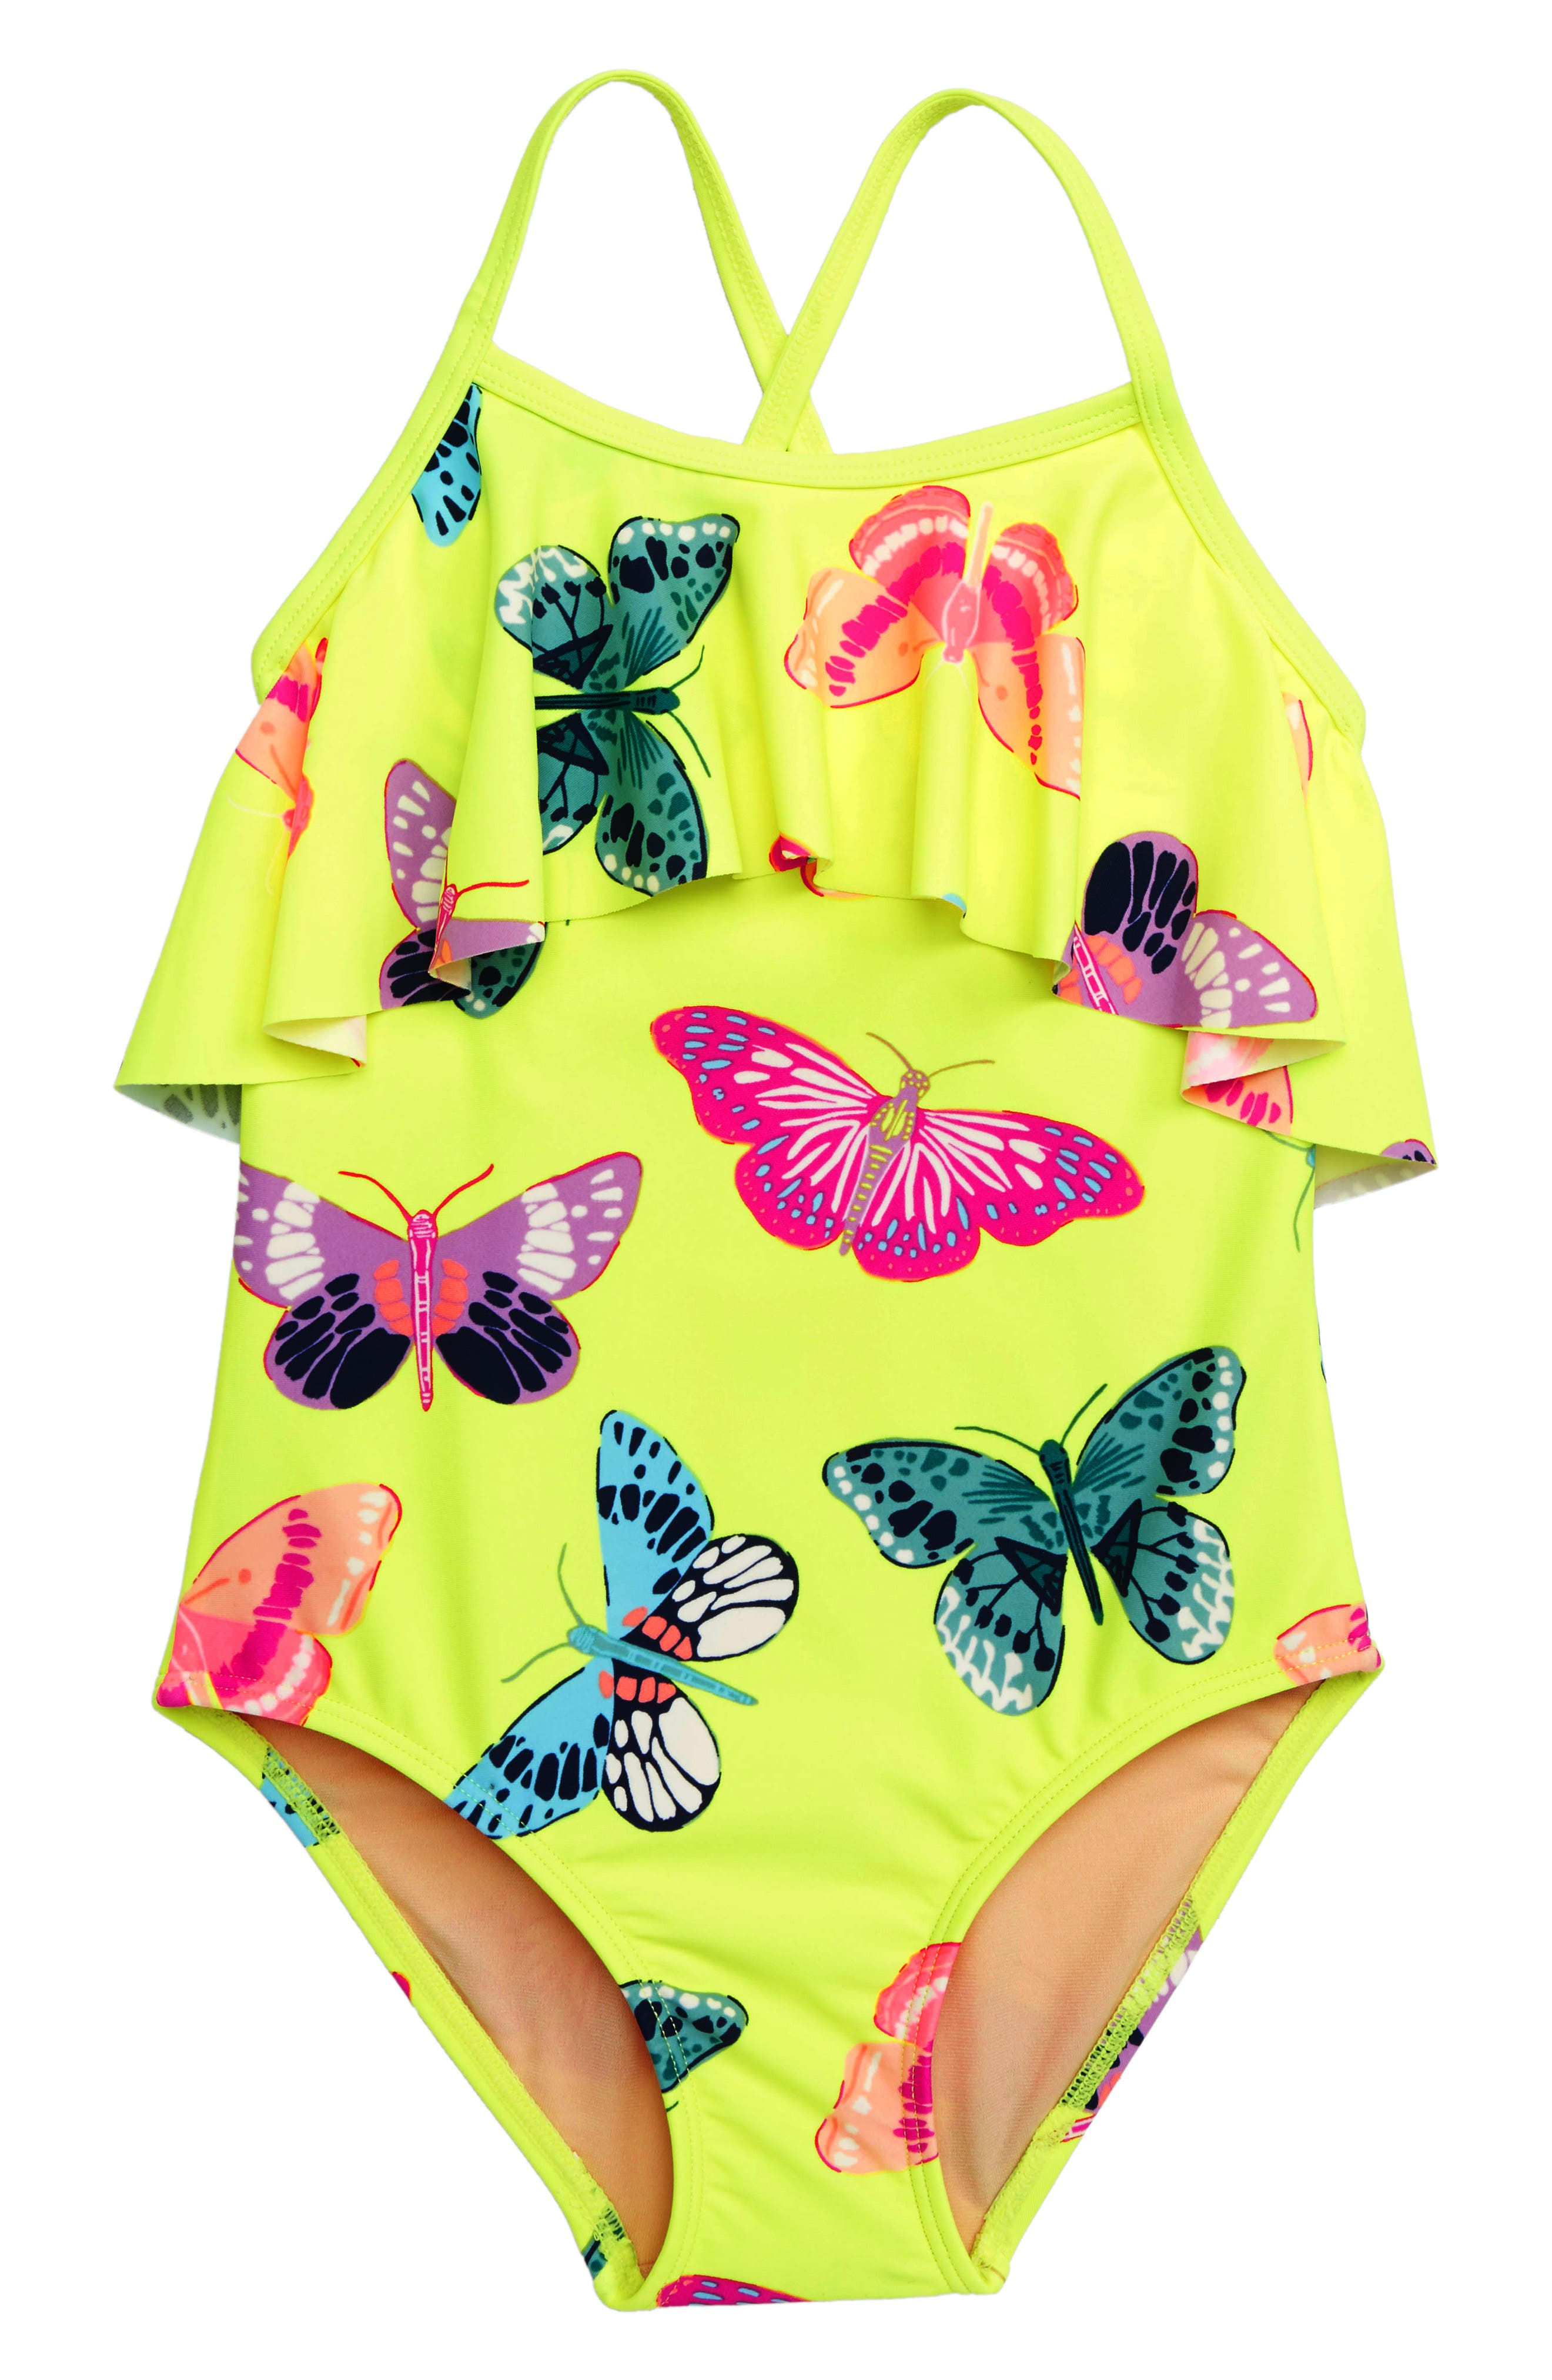 TEA COLLECTION Ruffle One-Piece Swimsuit, Main, color, GOSSAMER GLOW